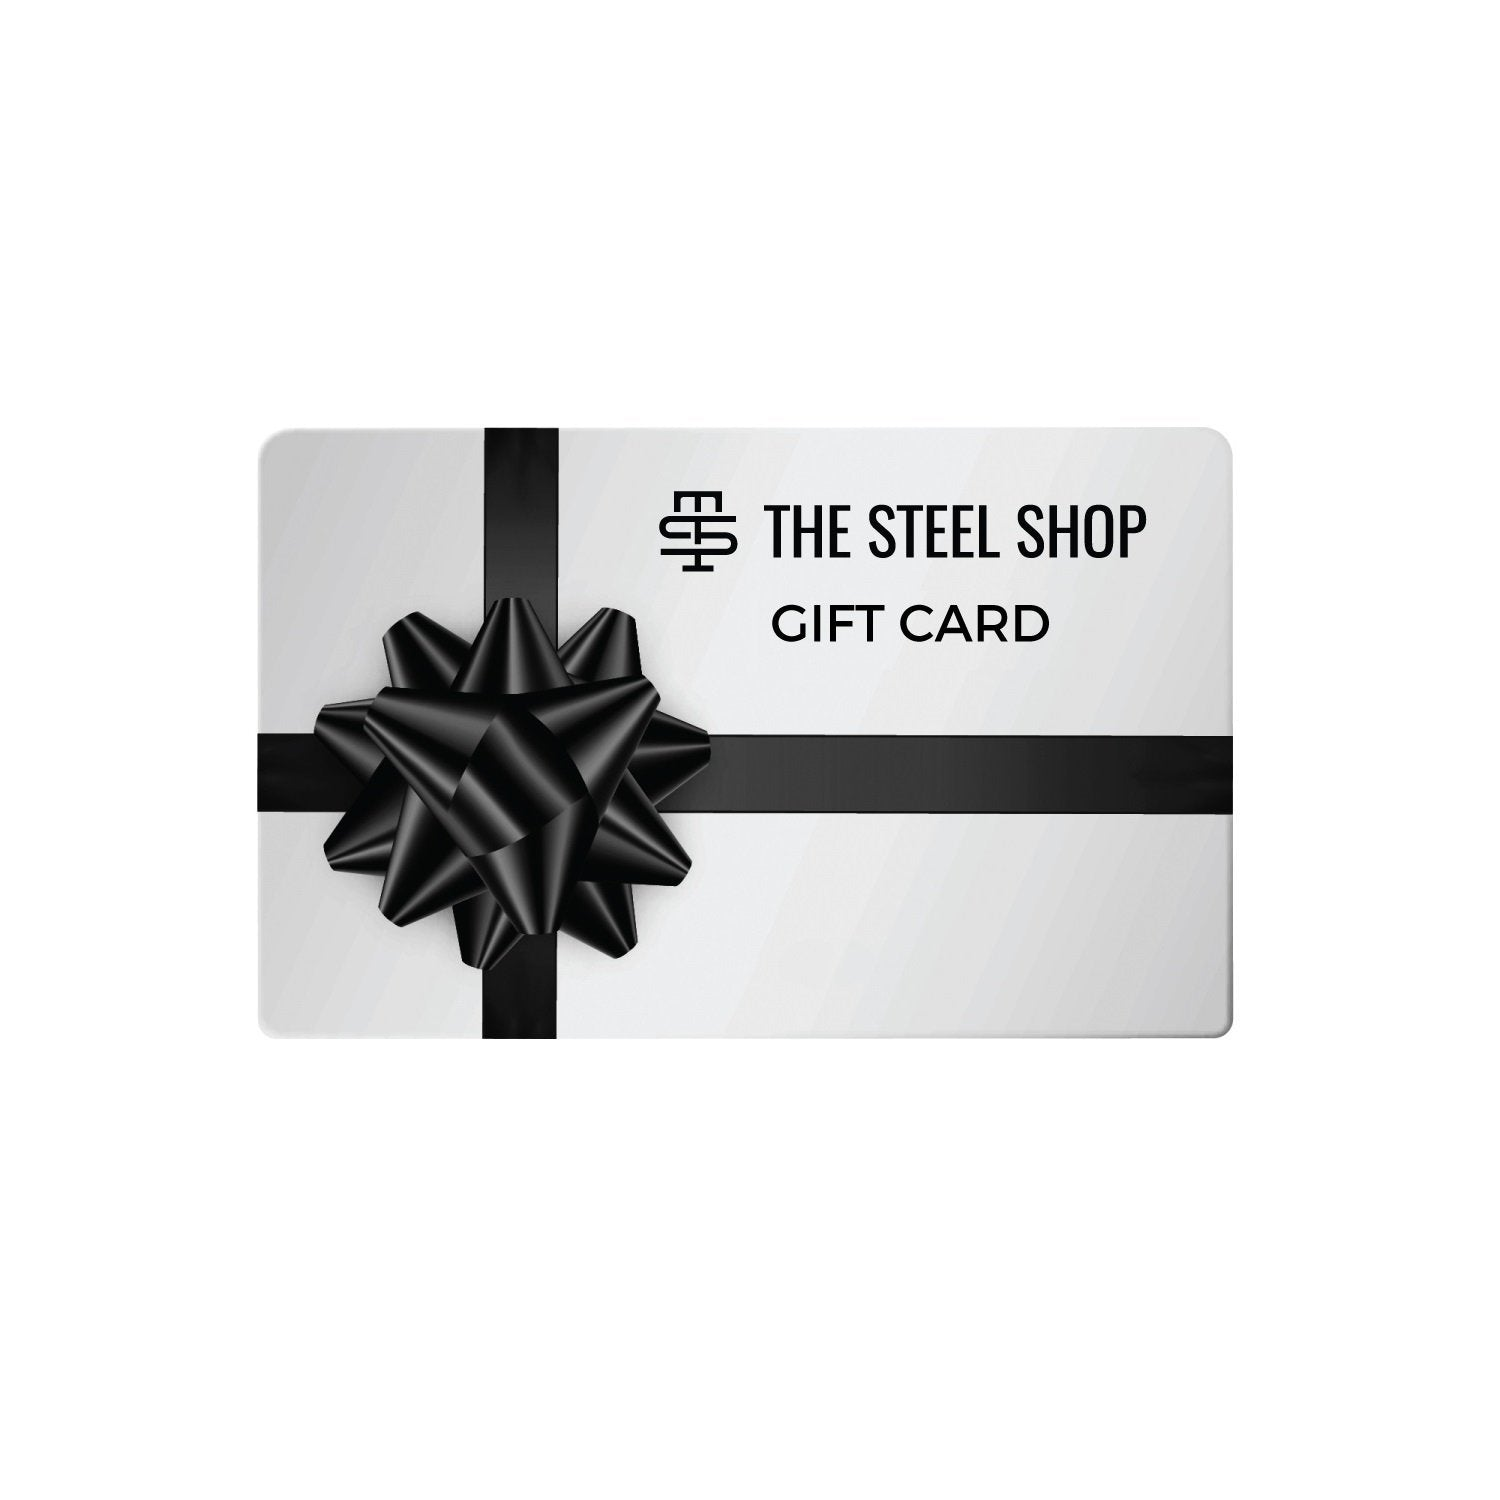 The Steel Shop Coupons and Promo Code